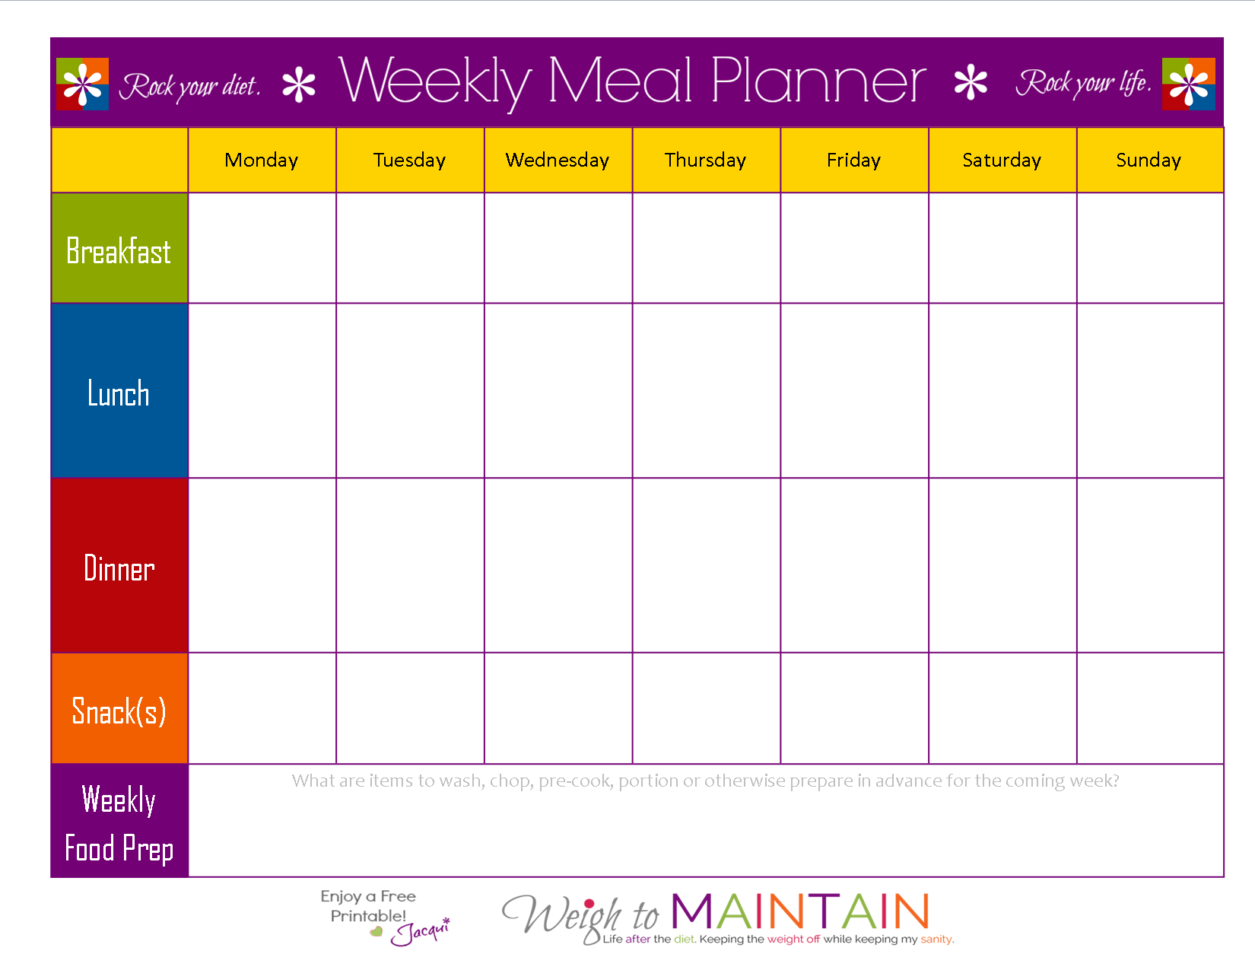 Keto Meal Plan Spreadsheet With Meal Planning So Simple Even A Gym Bro Can Do It – With Printables